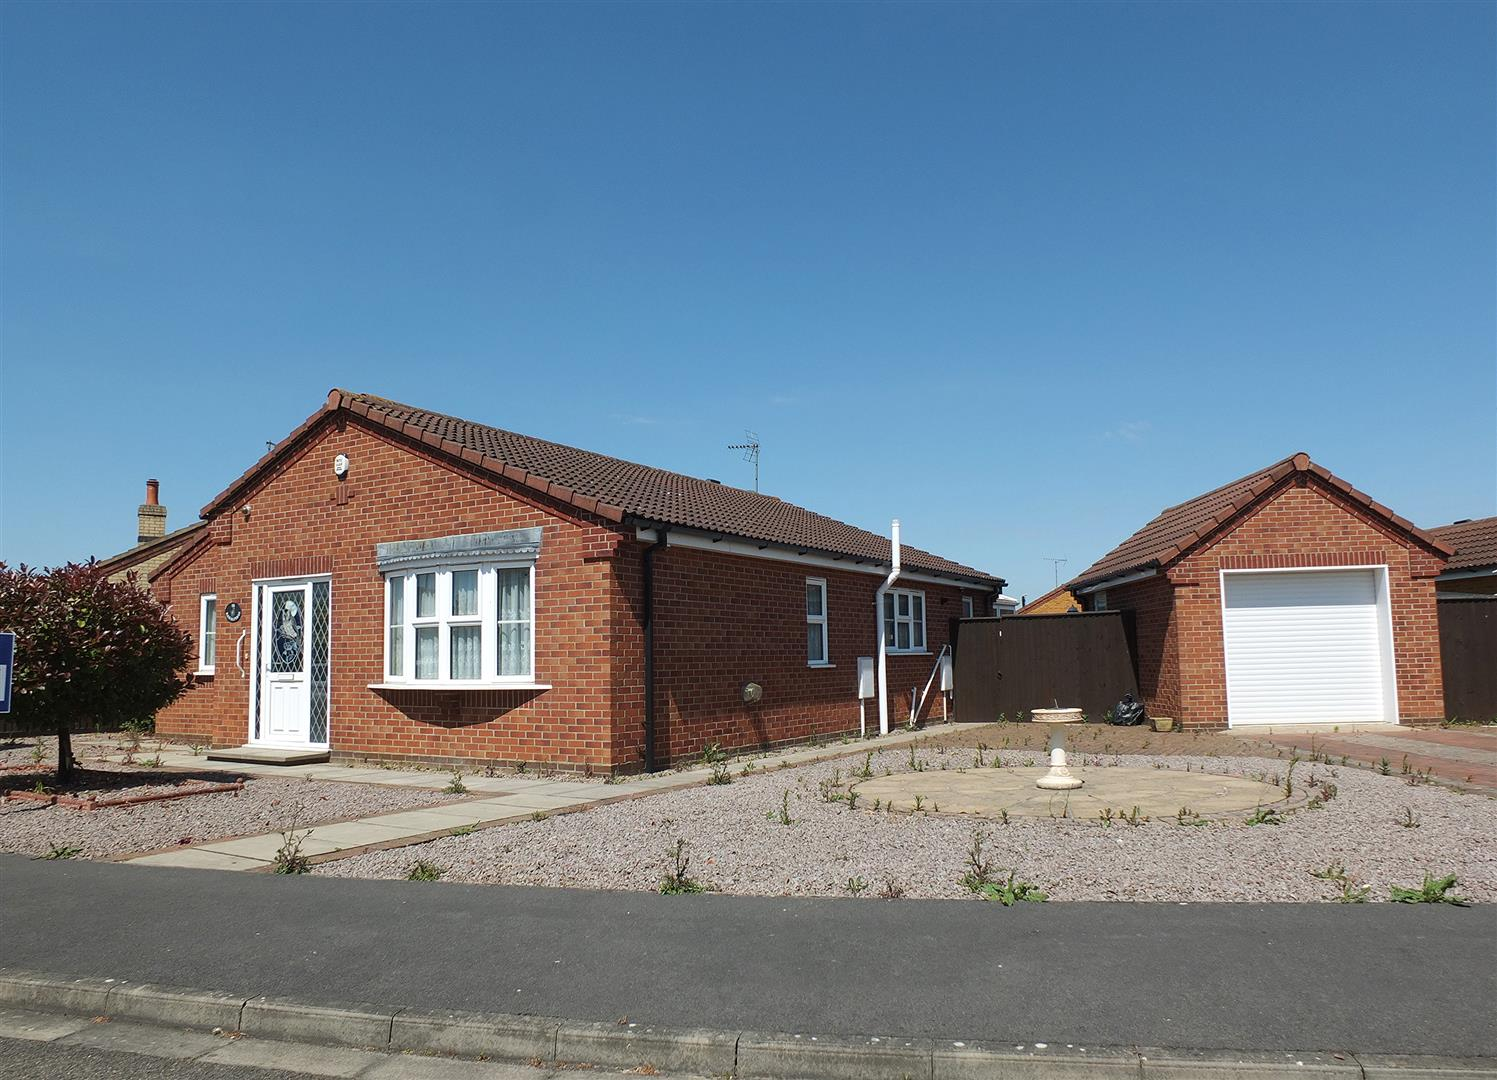 3 bed detached bungalow for sale in Long Sutton Spalding, PE12 9FR - Property Image 1